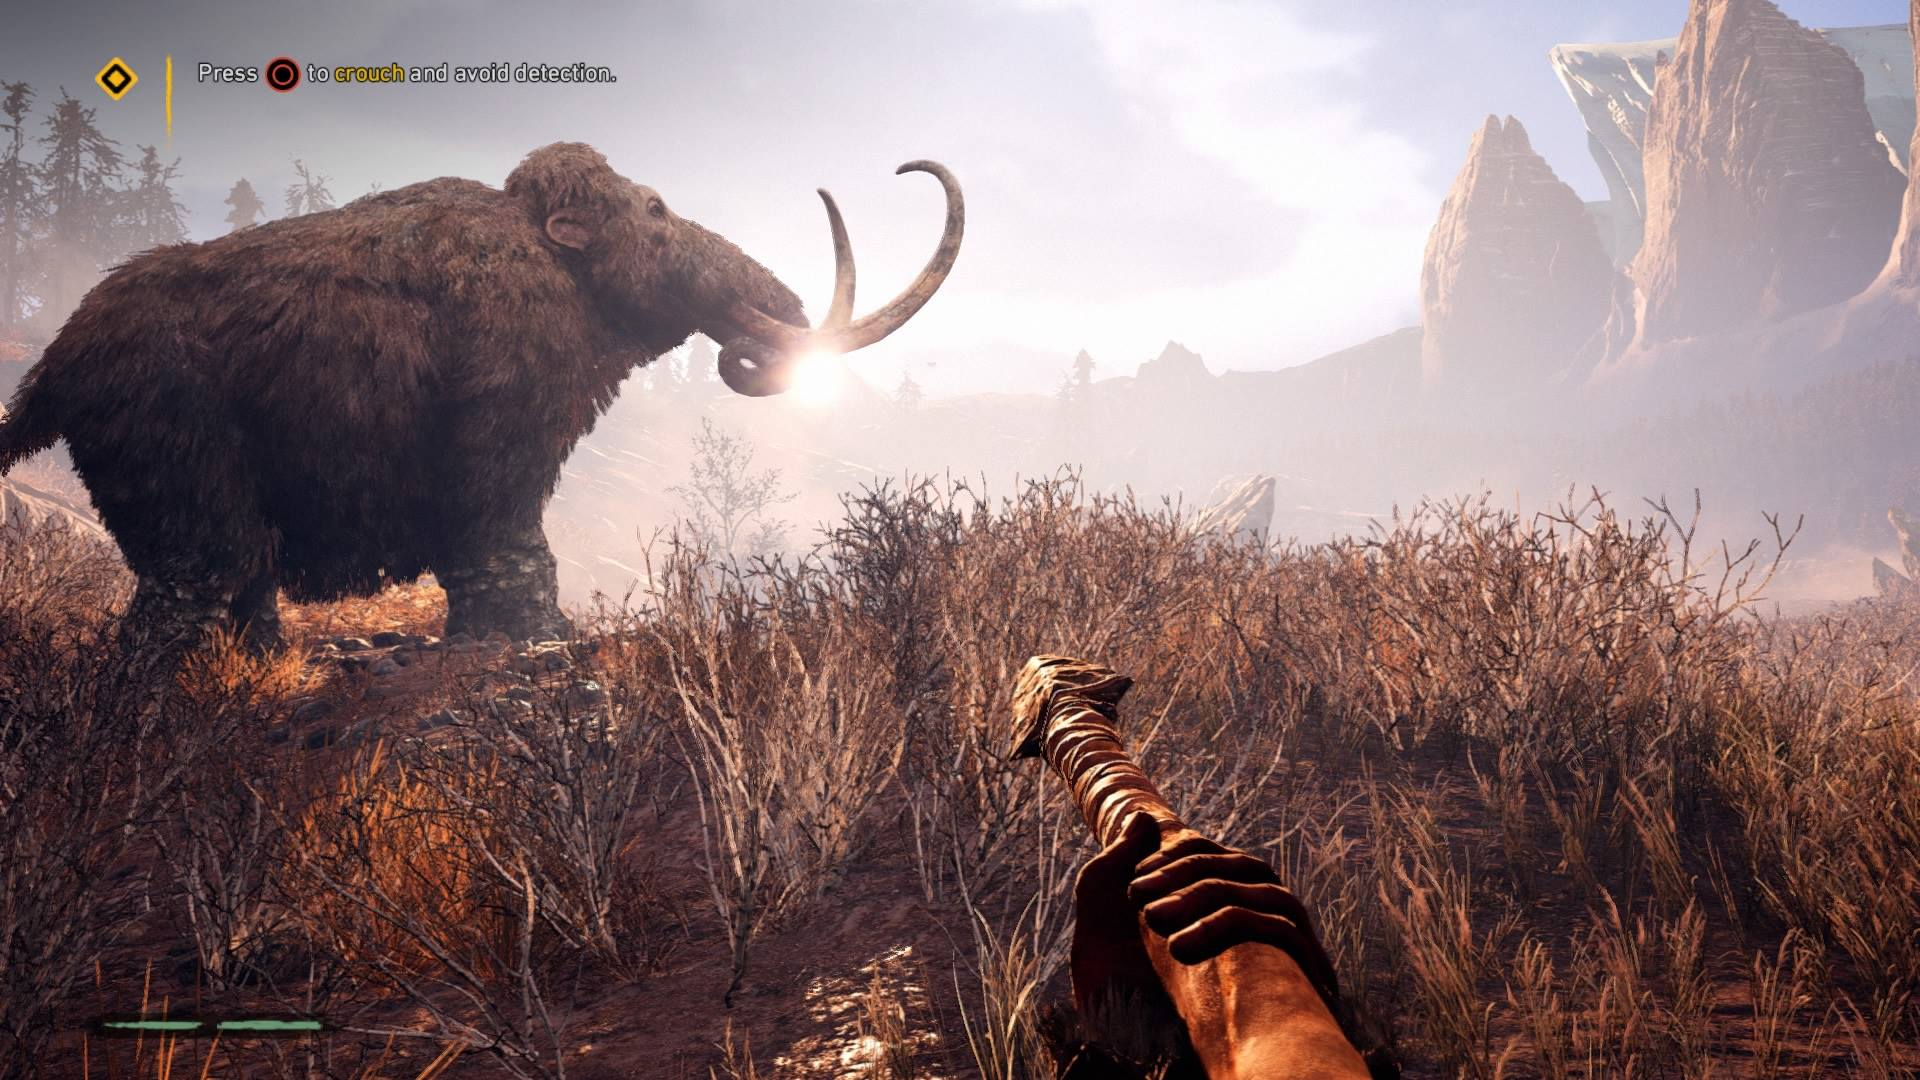 farcry-primal-a-complete-carbon-copy-gameplay-like-farcry-4